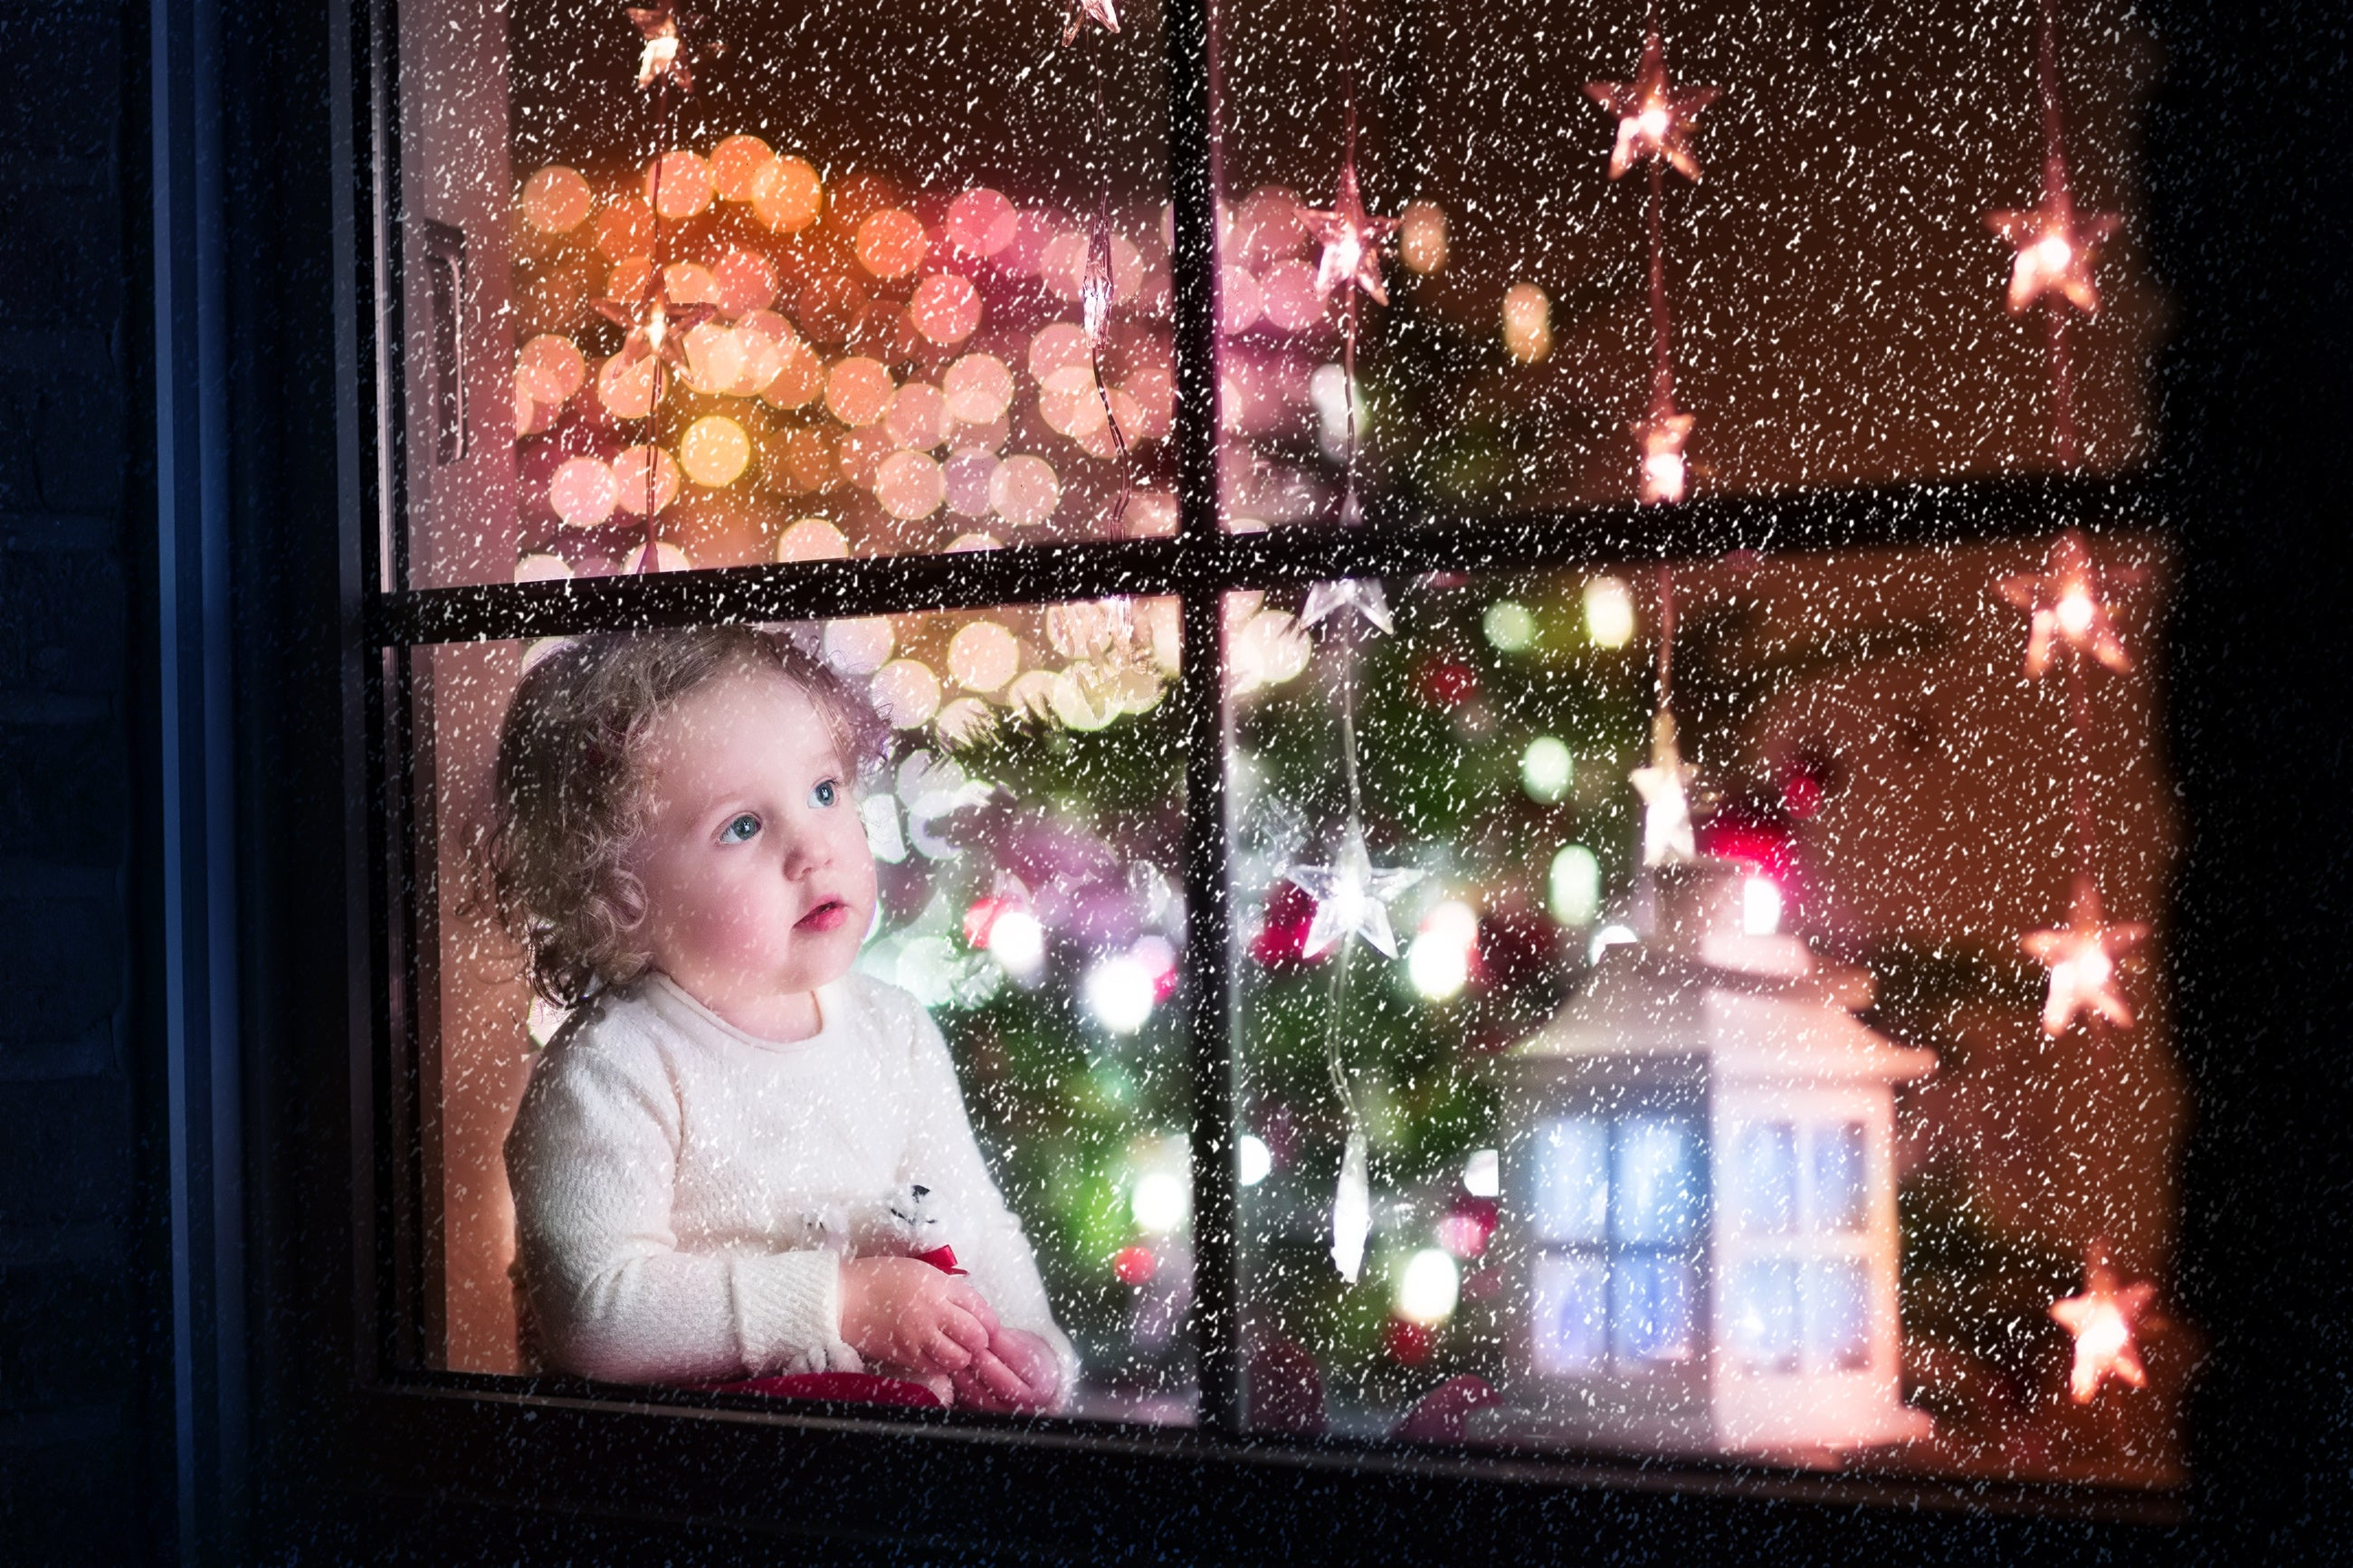 Young child looking out the window at snow on Christmas Eve - example of holiday photography